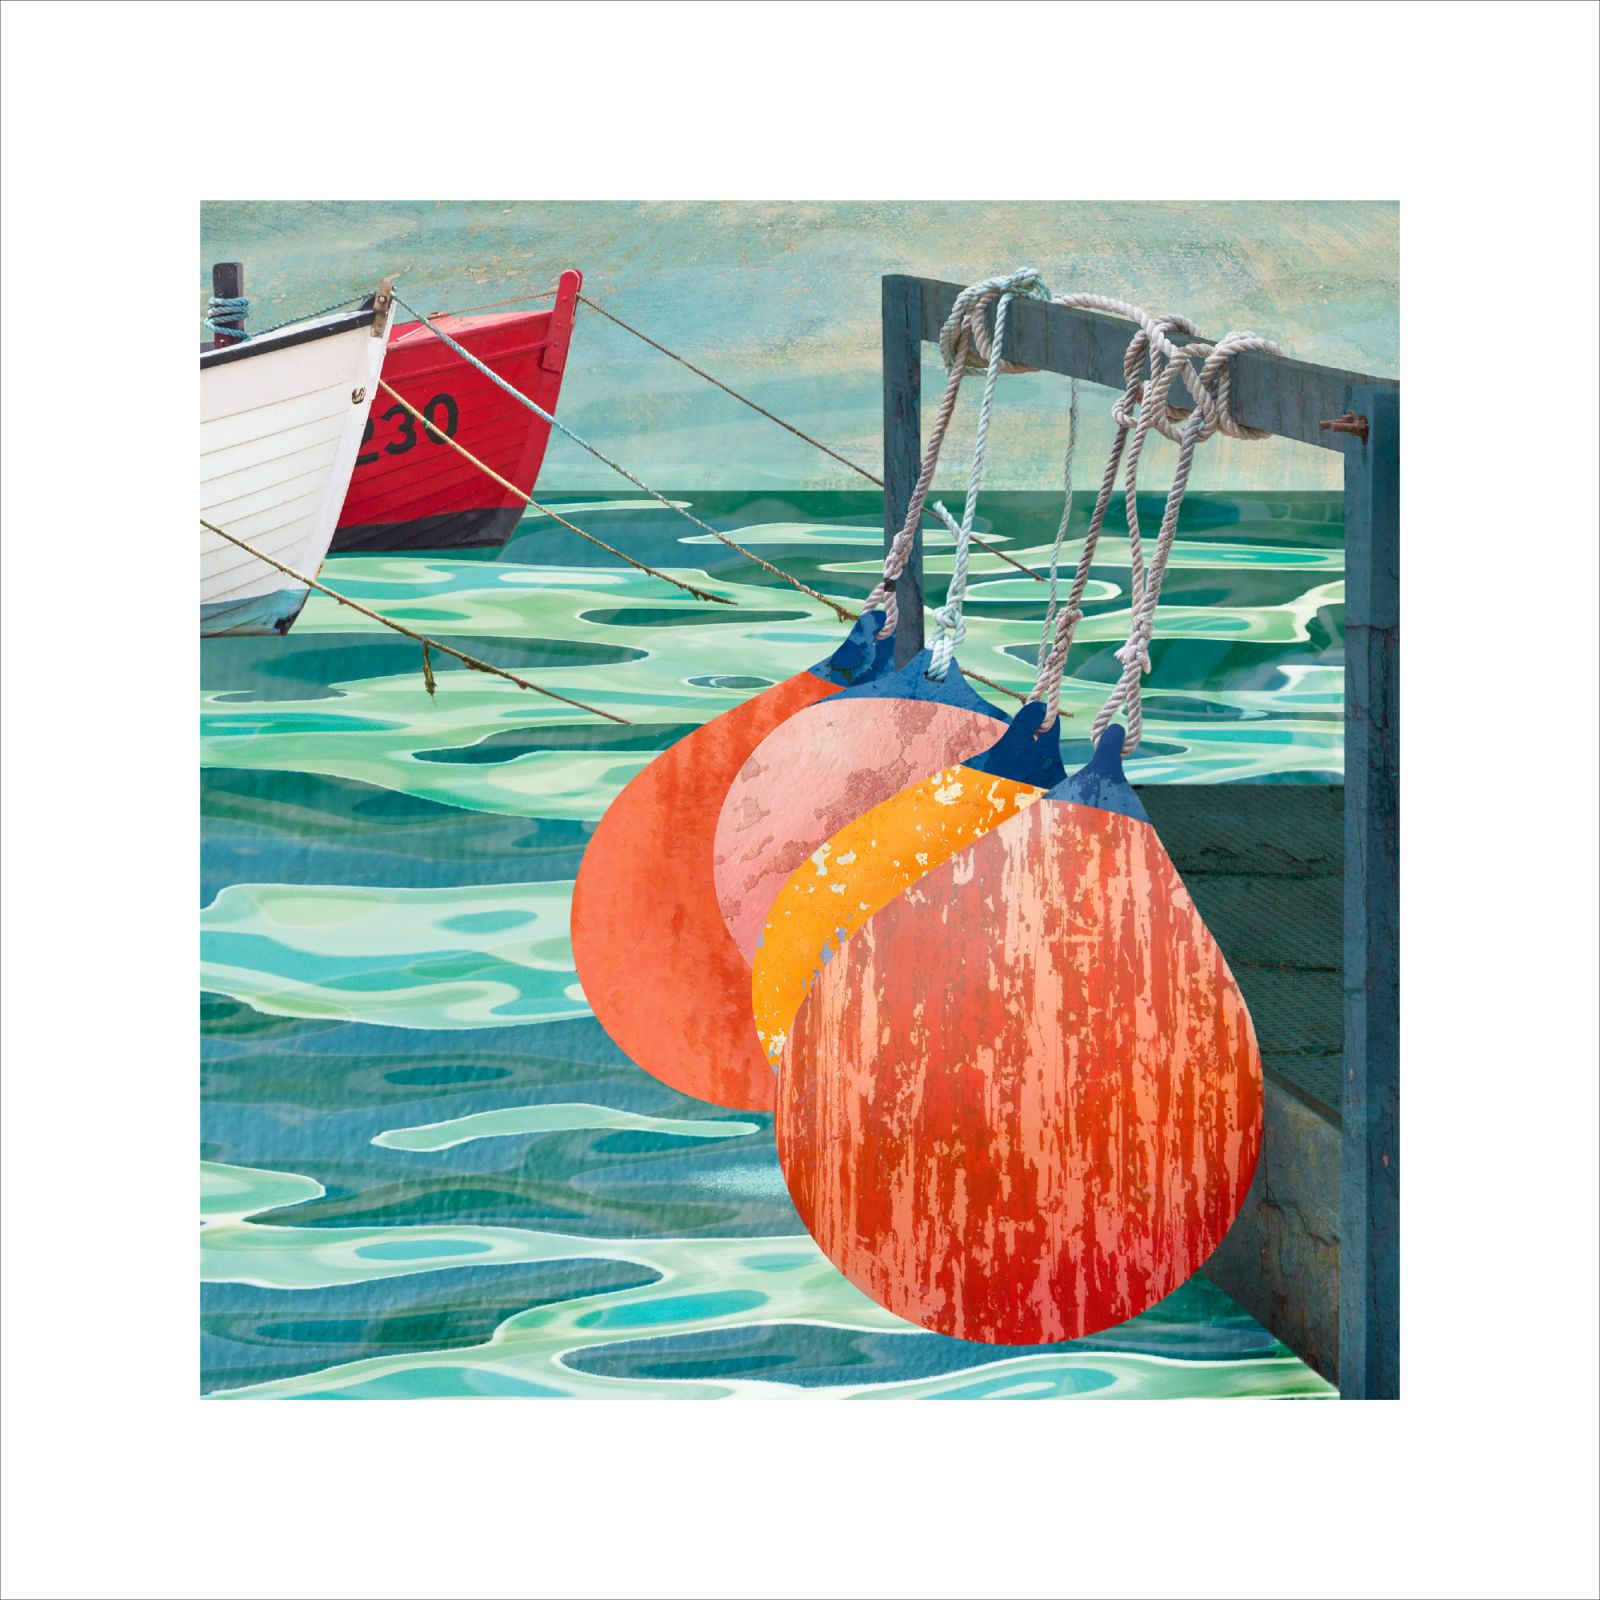 Claire Gill Artist, Seascape print, Buy art, collect art, art for interiors, Southwold Harbour, boats, southwold, limited edition print, coastal art, claire gill artist